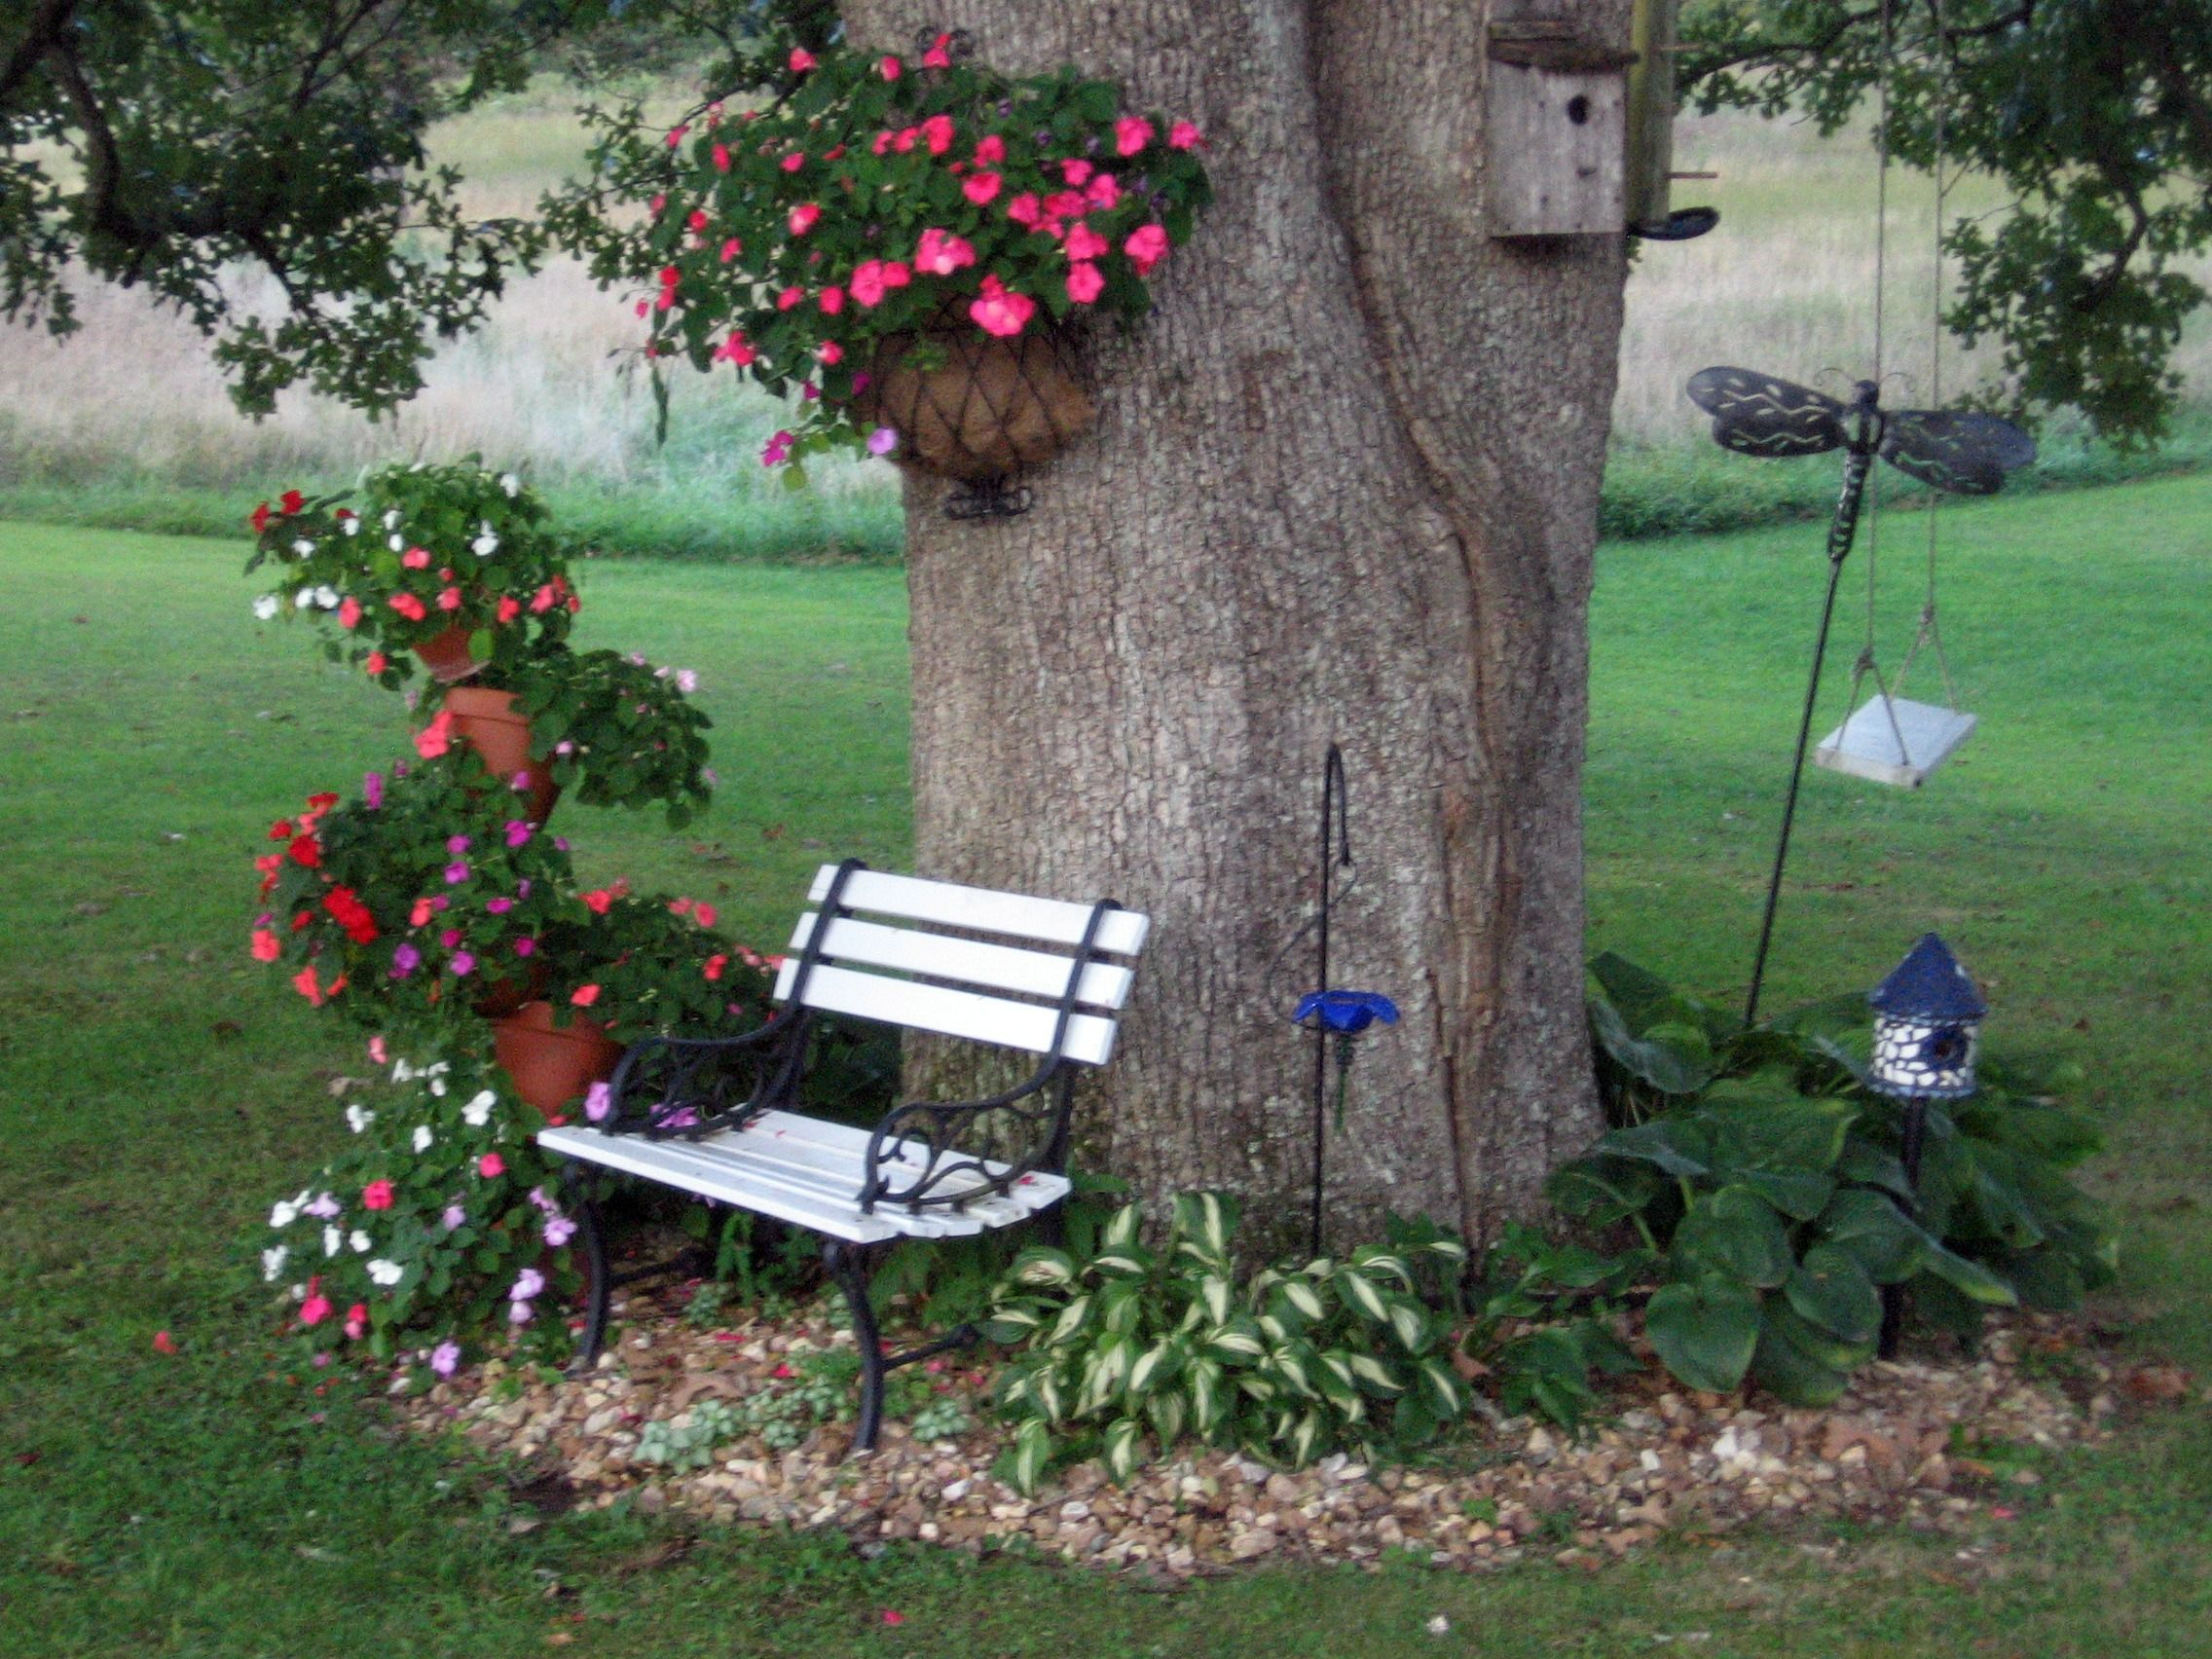 10 ideas originales para jardines trees the tree and flower for Large flower garden ideas